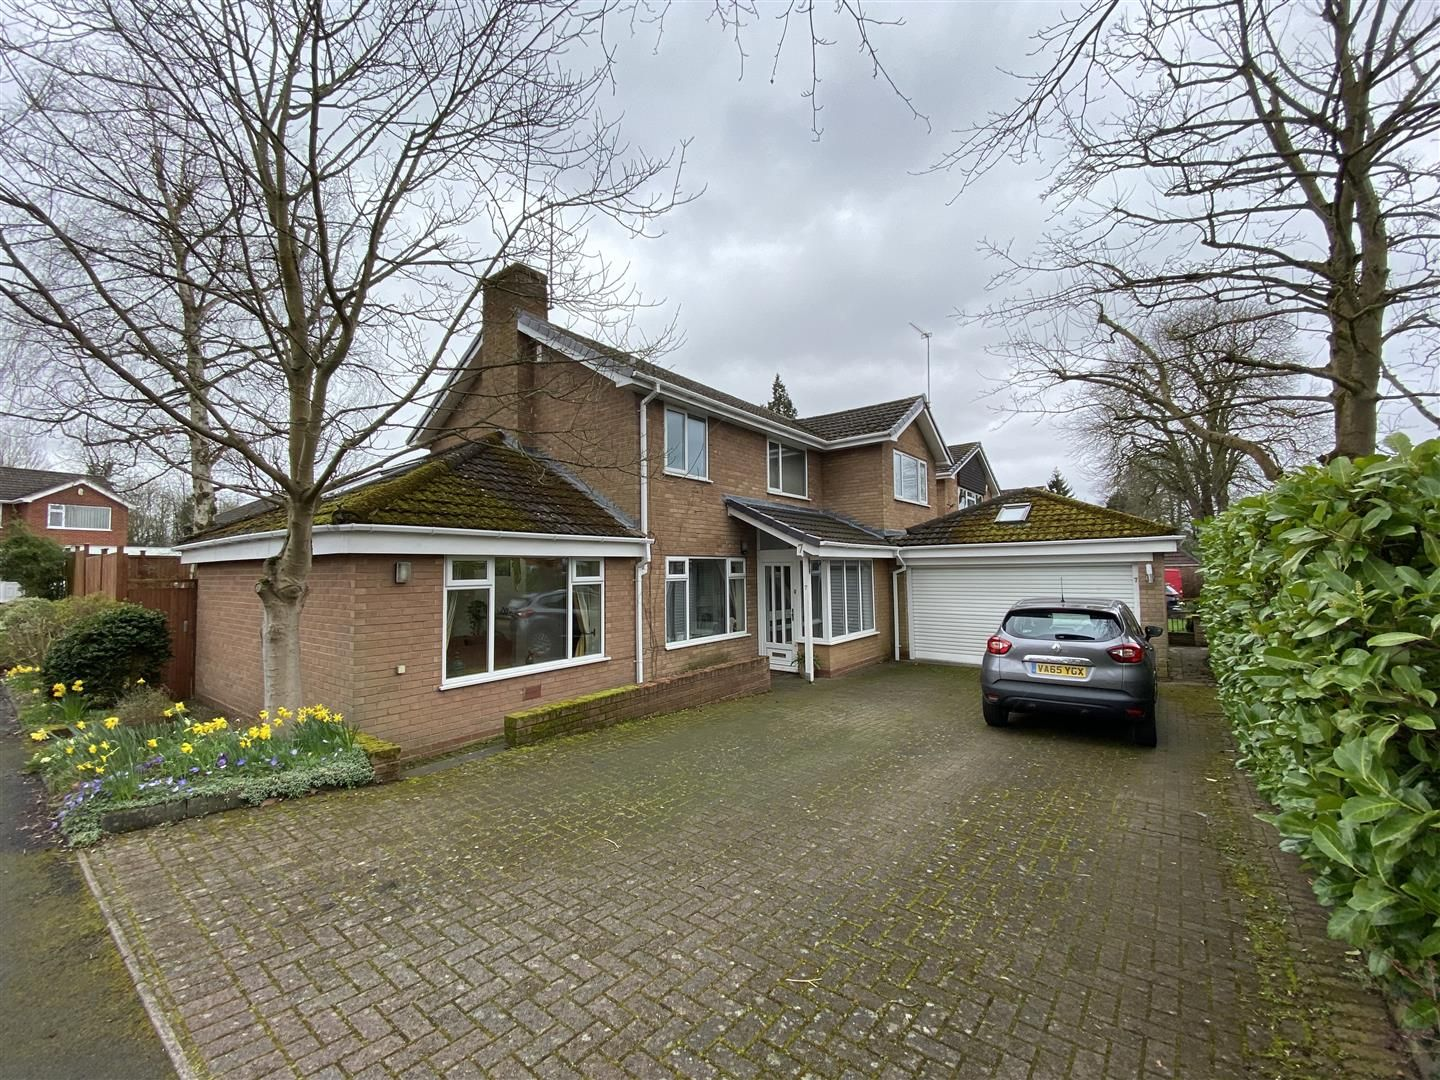 4 bed detached for sale in Blakedown  - Property Image 2